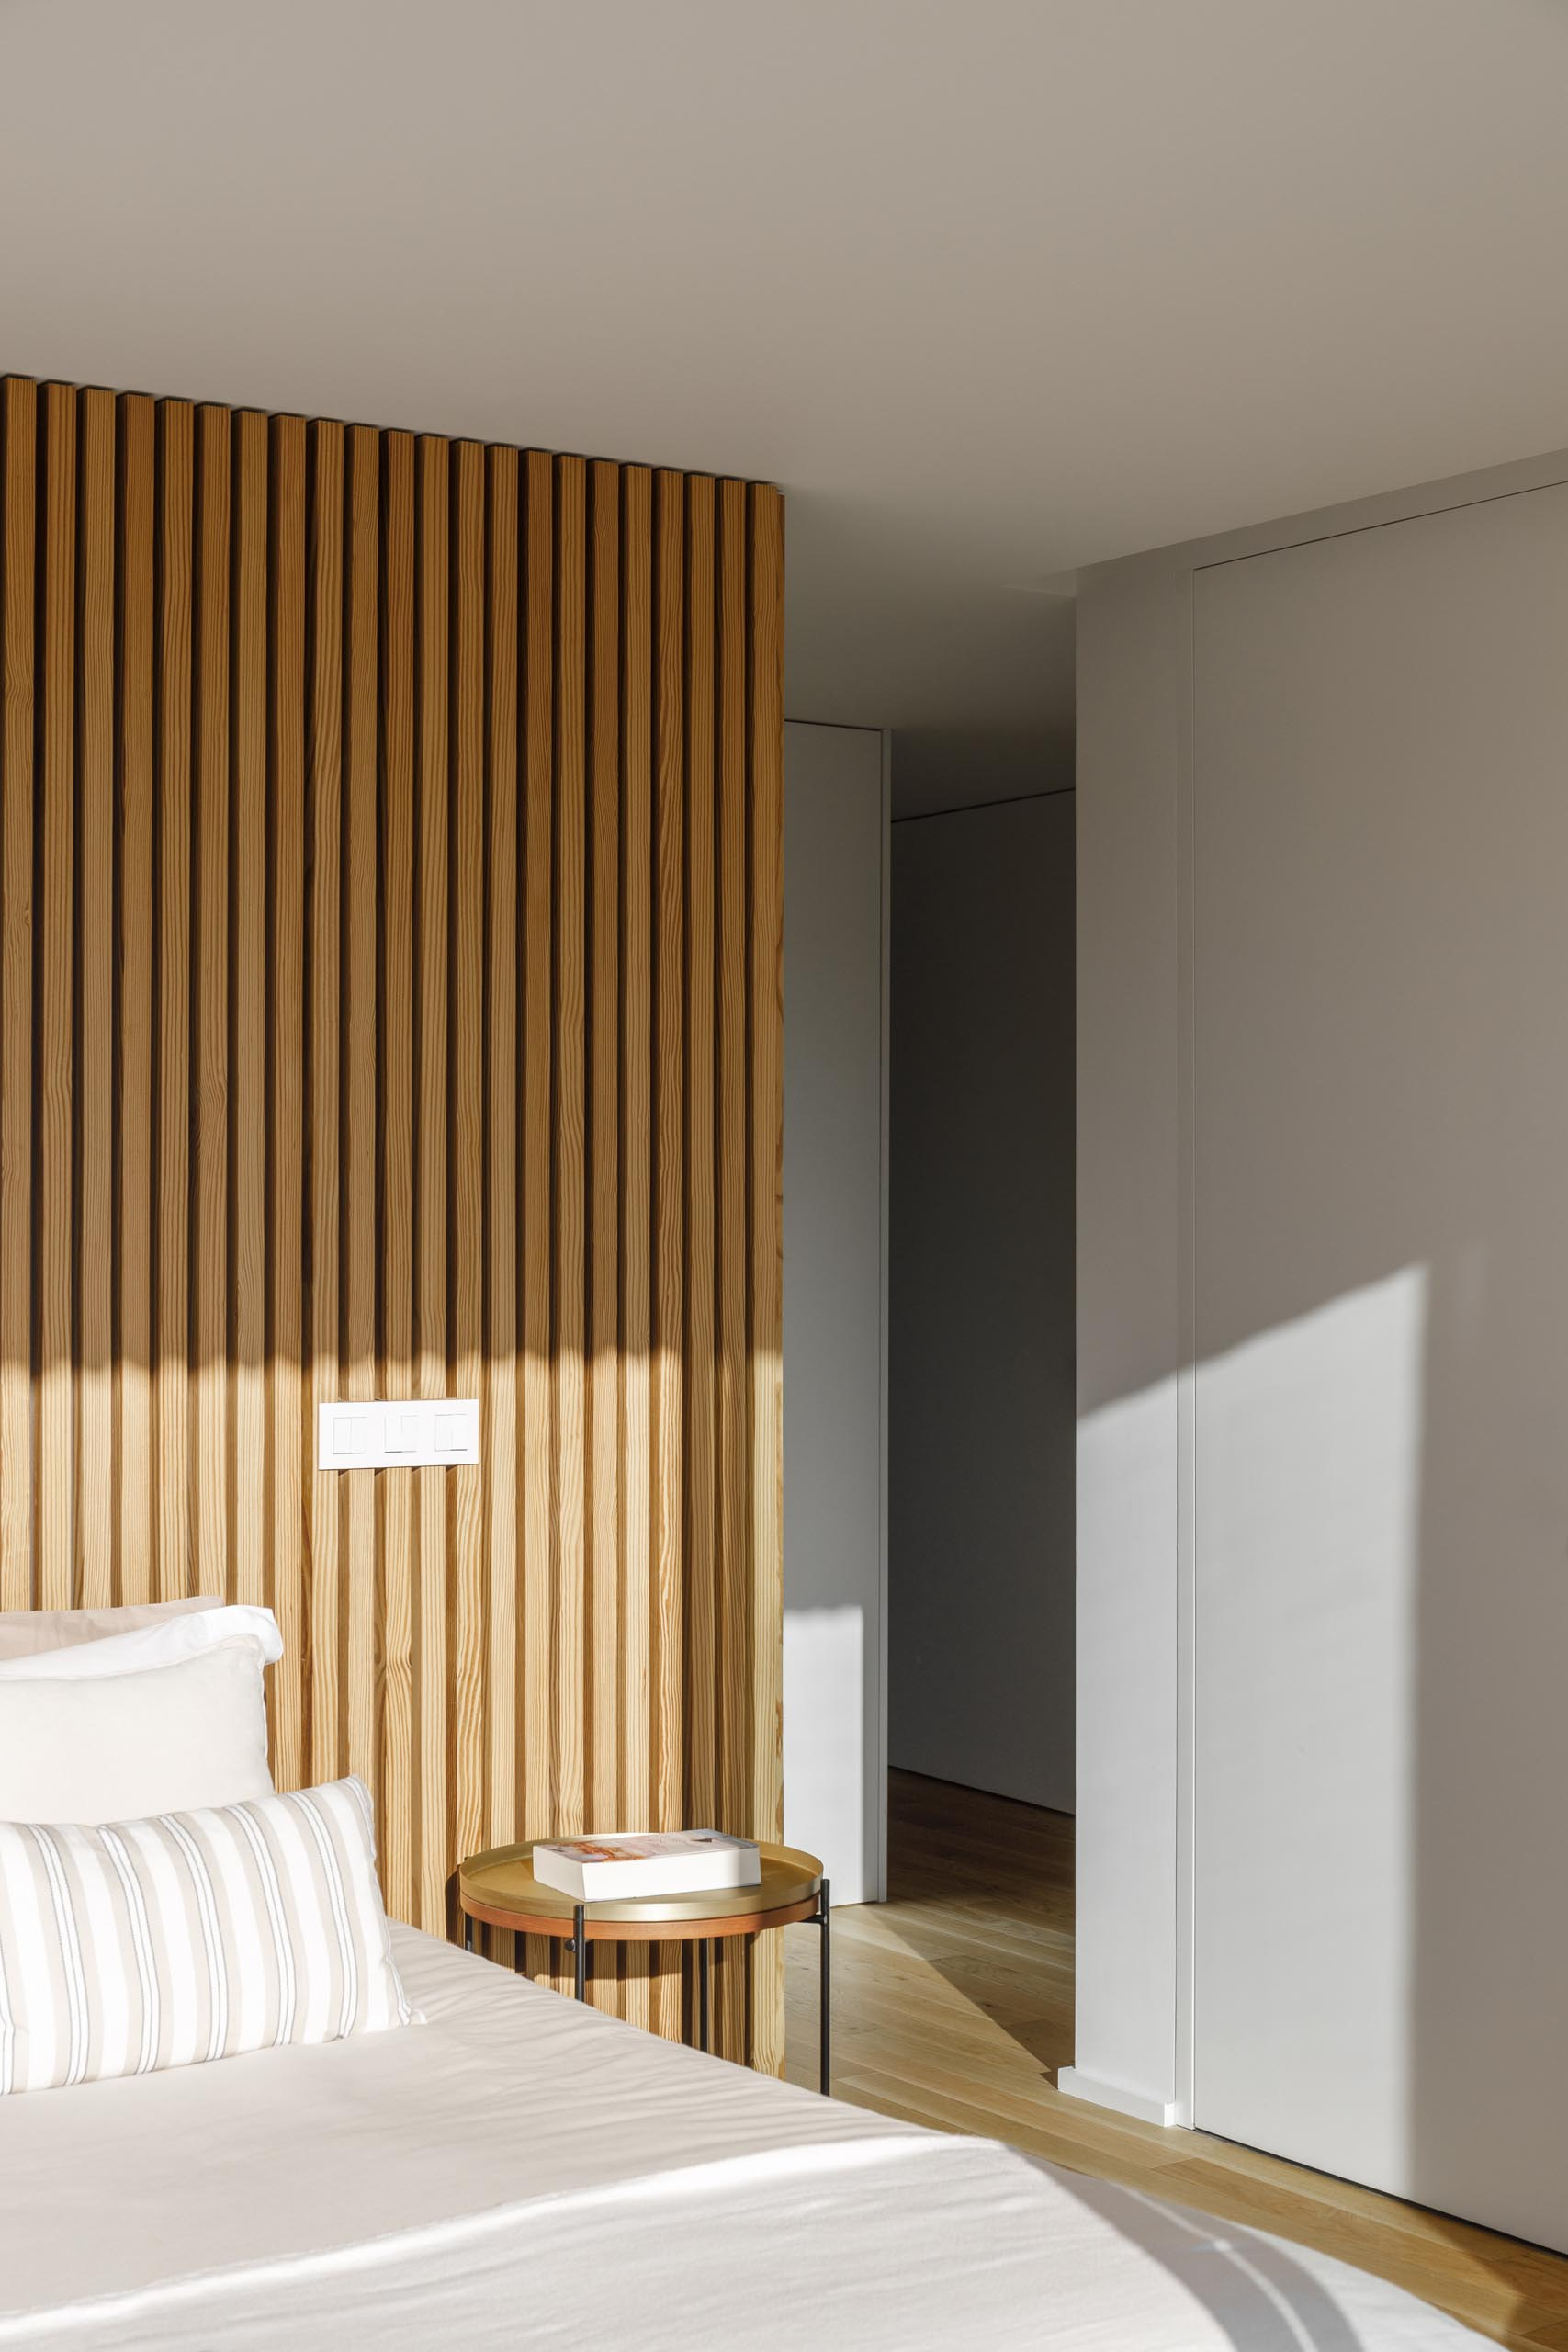 A modern bedroom with a wood slat accent wall.